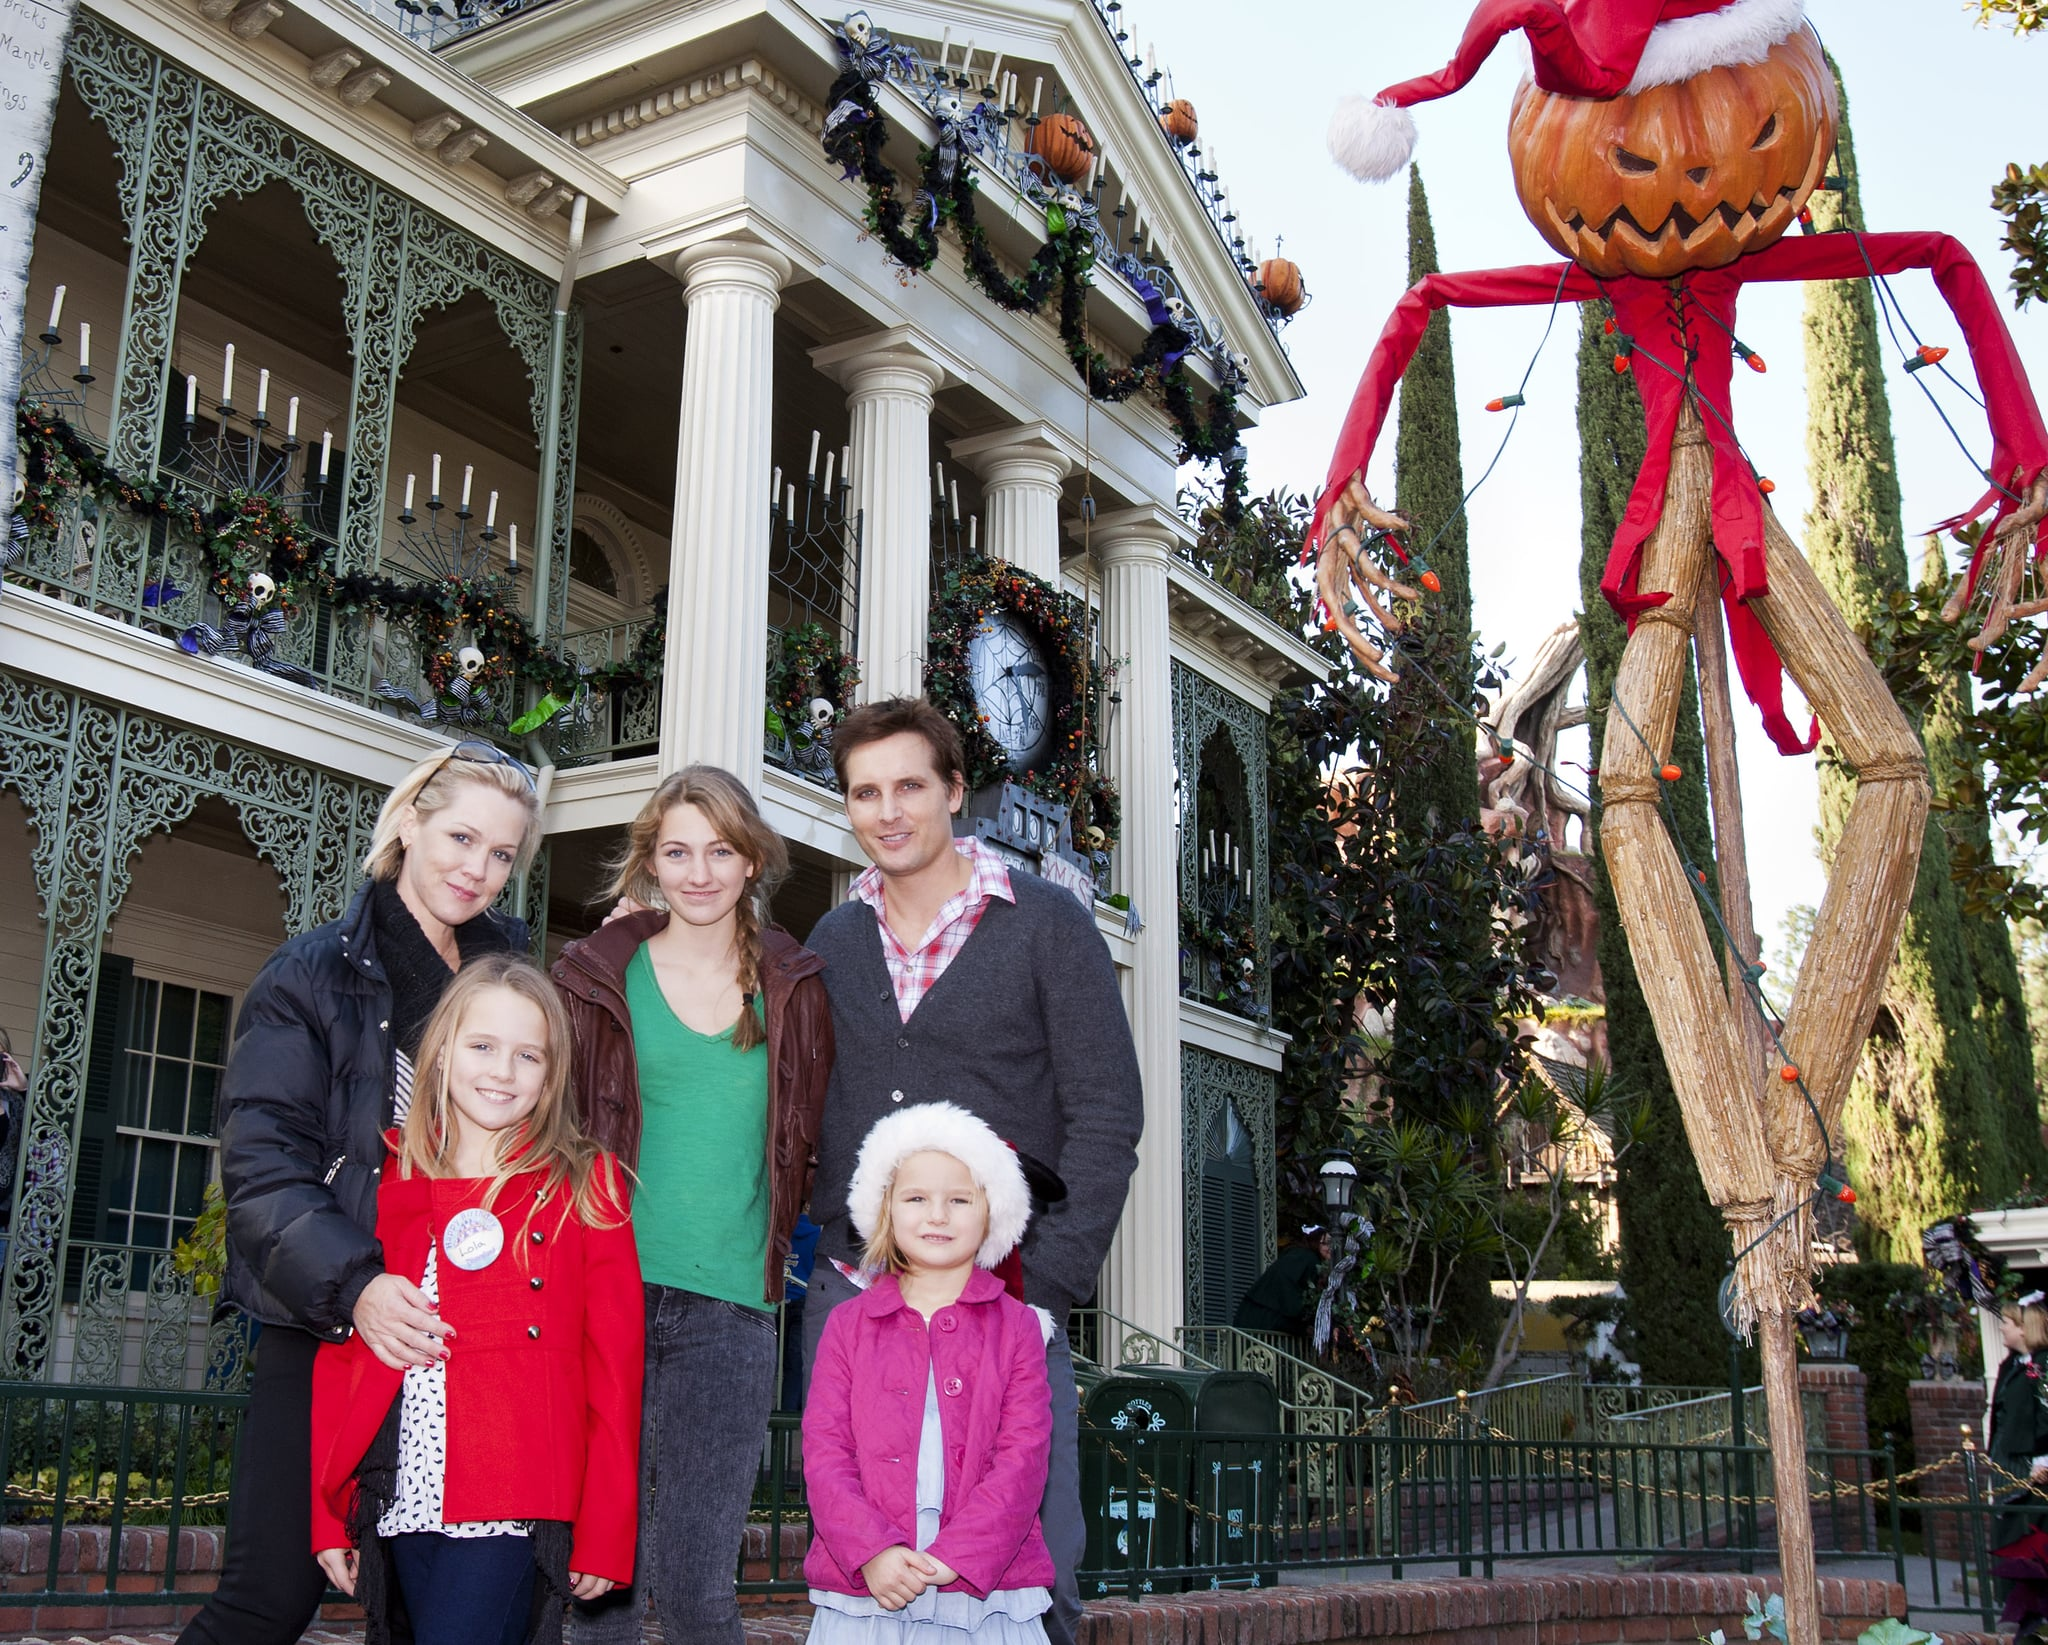 Jennie Garth and Peter Facinelli enjoyed a Halloween trip to the park with their three girls.